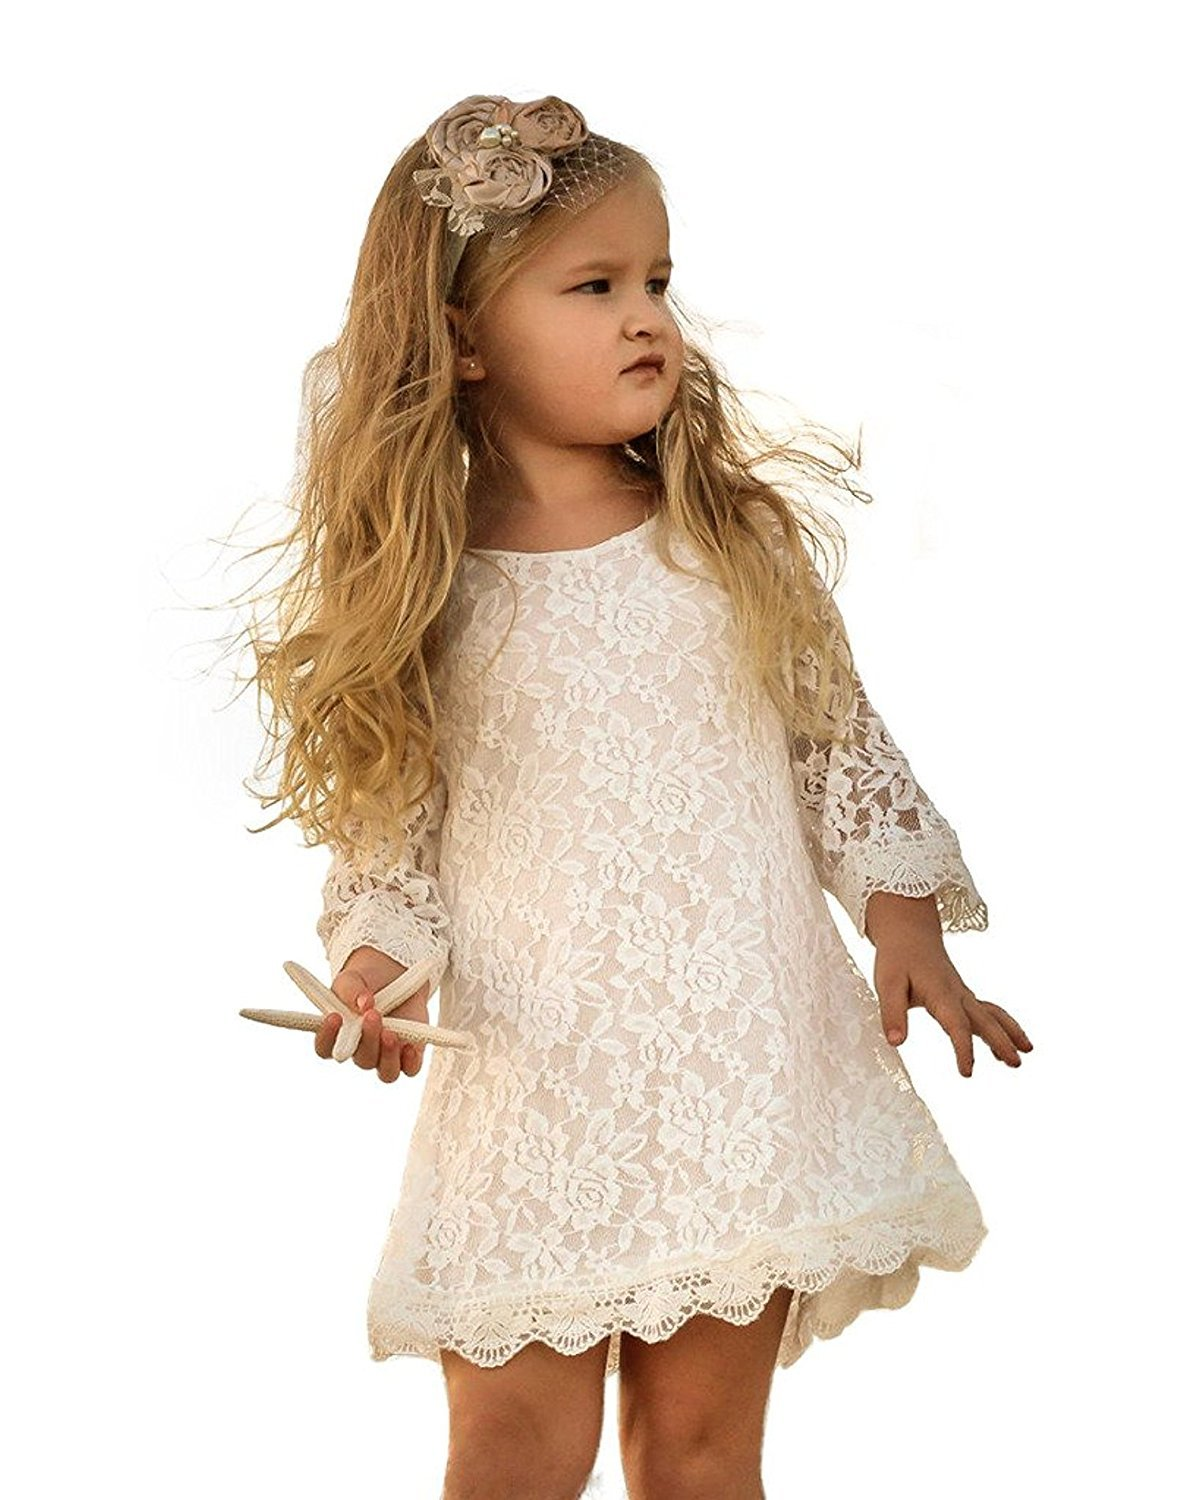 BELS Baby Girls Princess Long Sleeve Flower White Lace Party Wedding Summer Dress (White, 12-18m(80)) by BELS